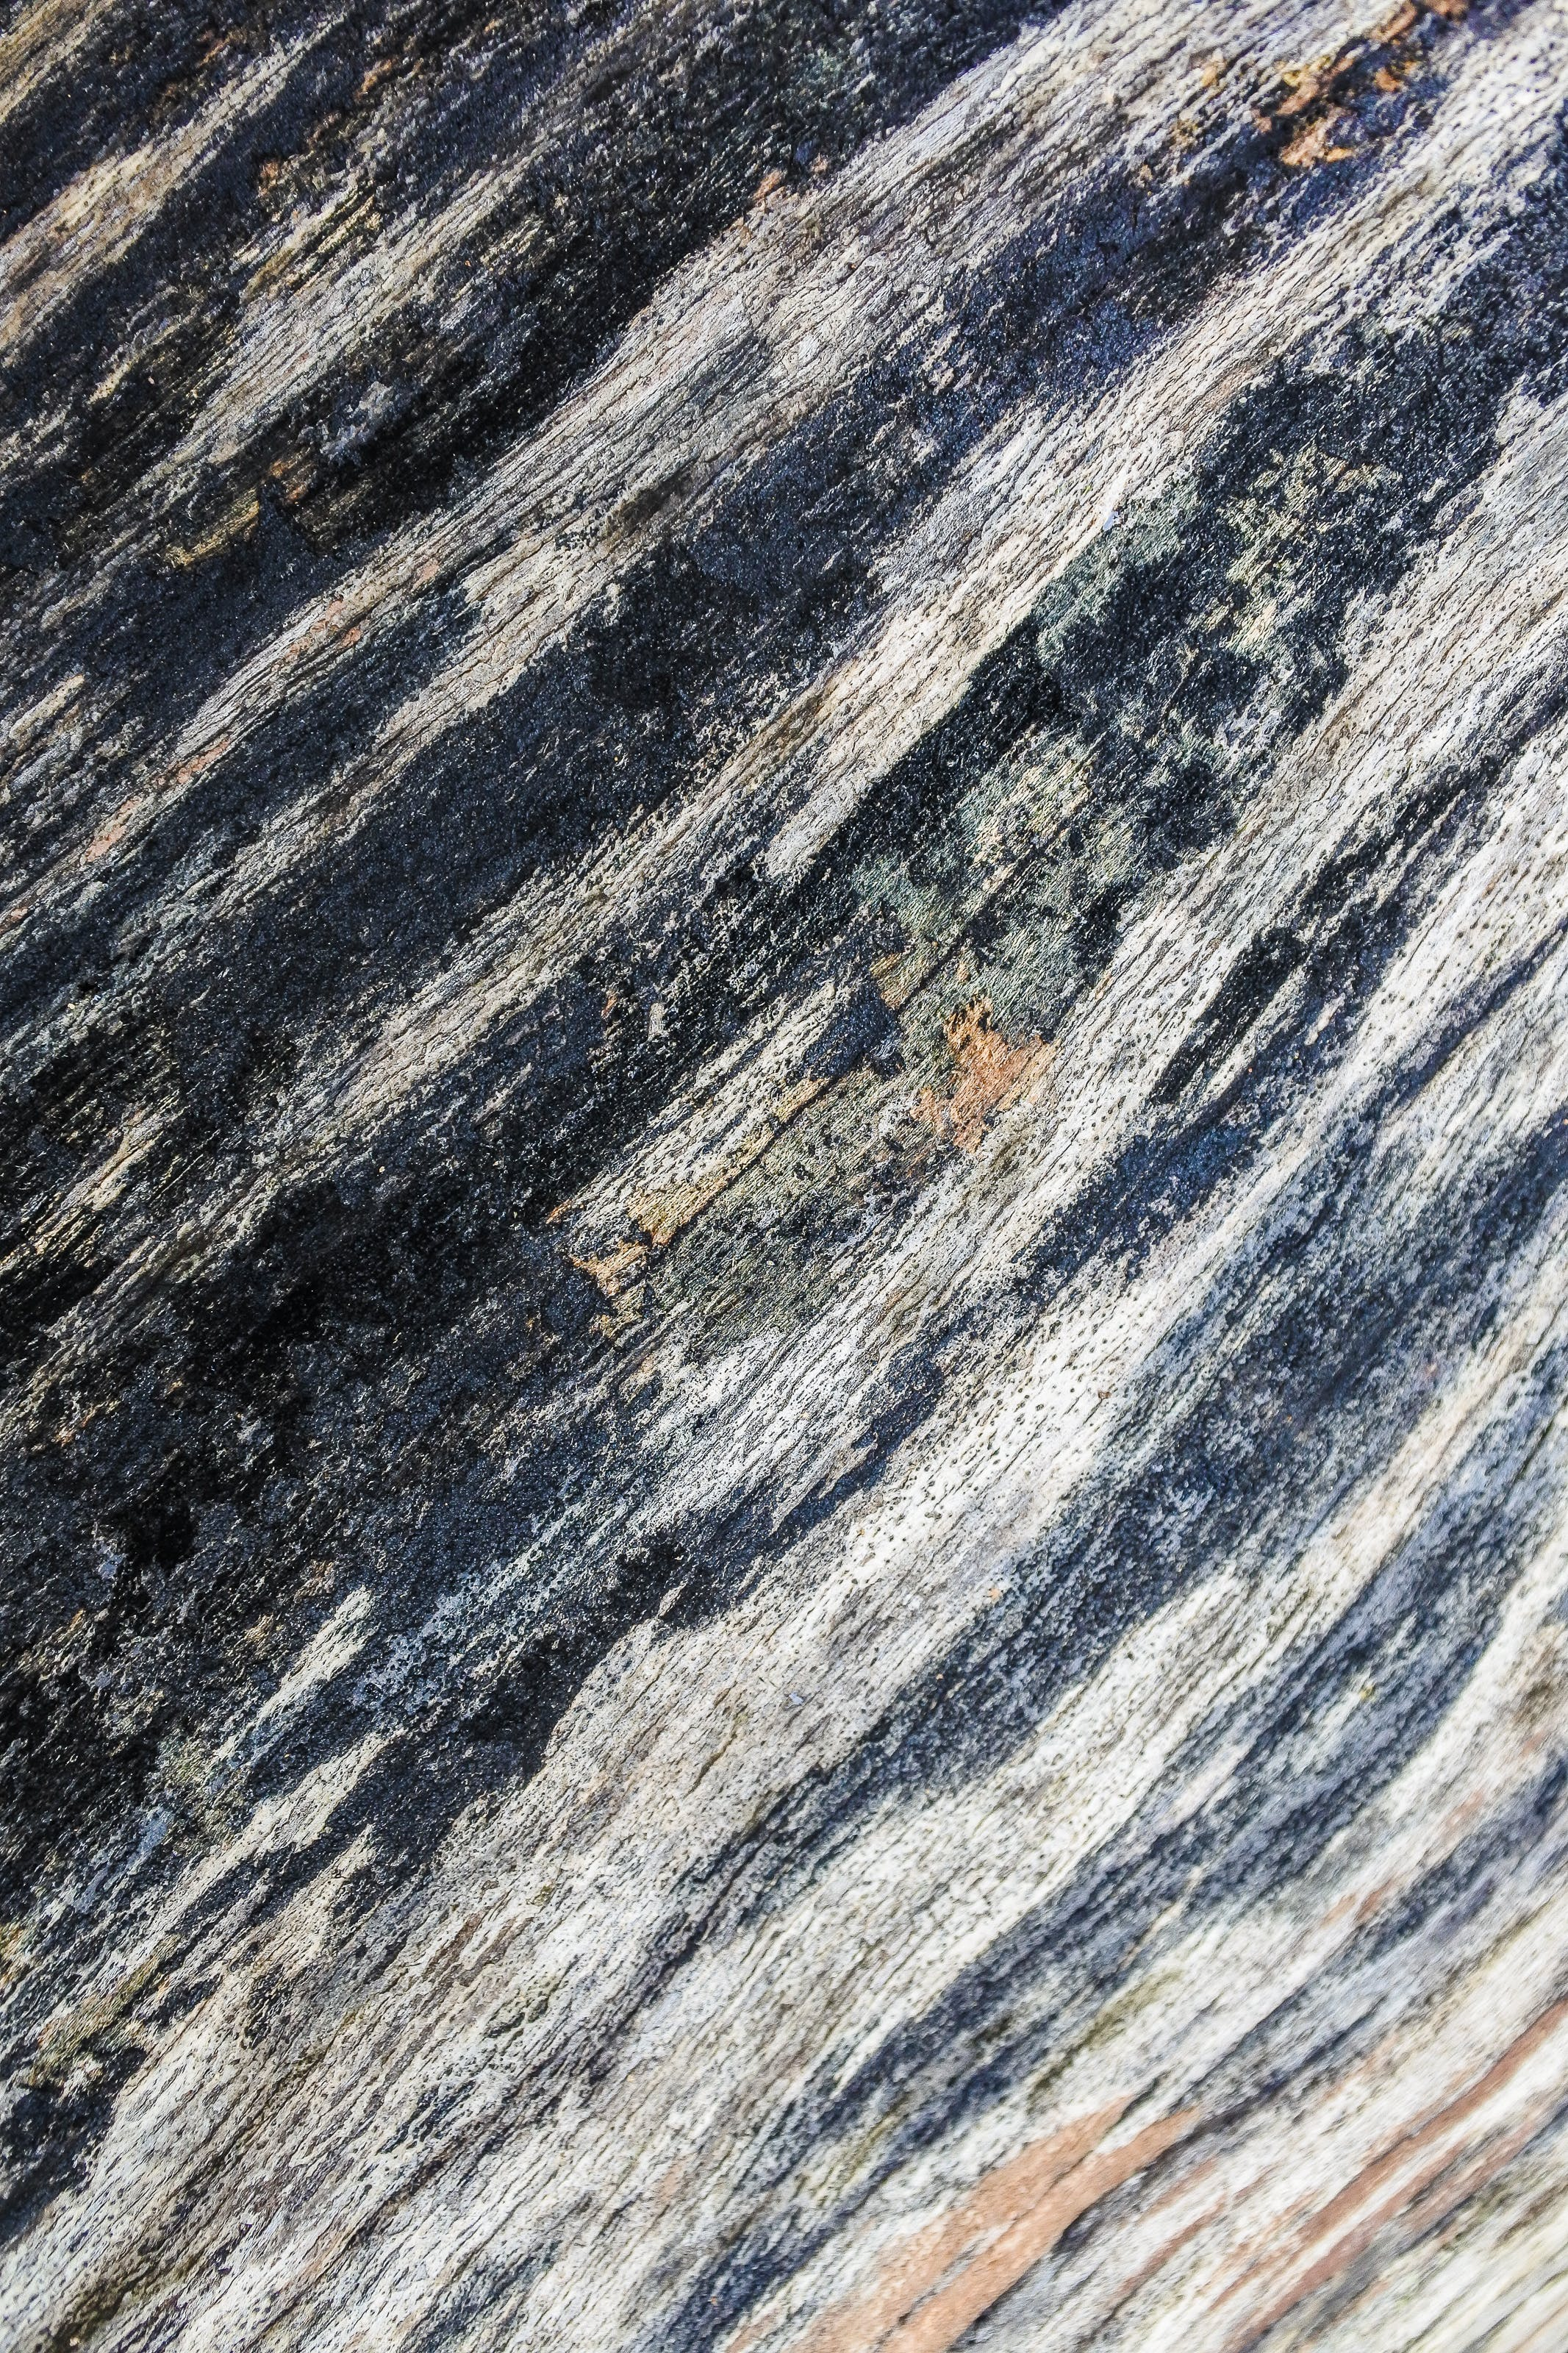 Free stock photo of abstract, alpine, background, bark